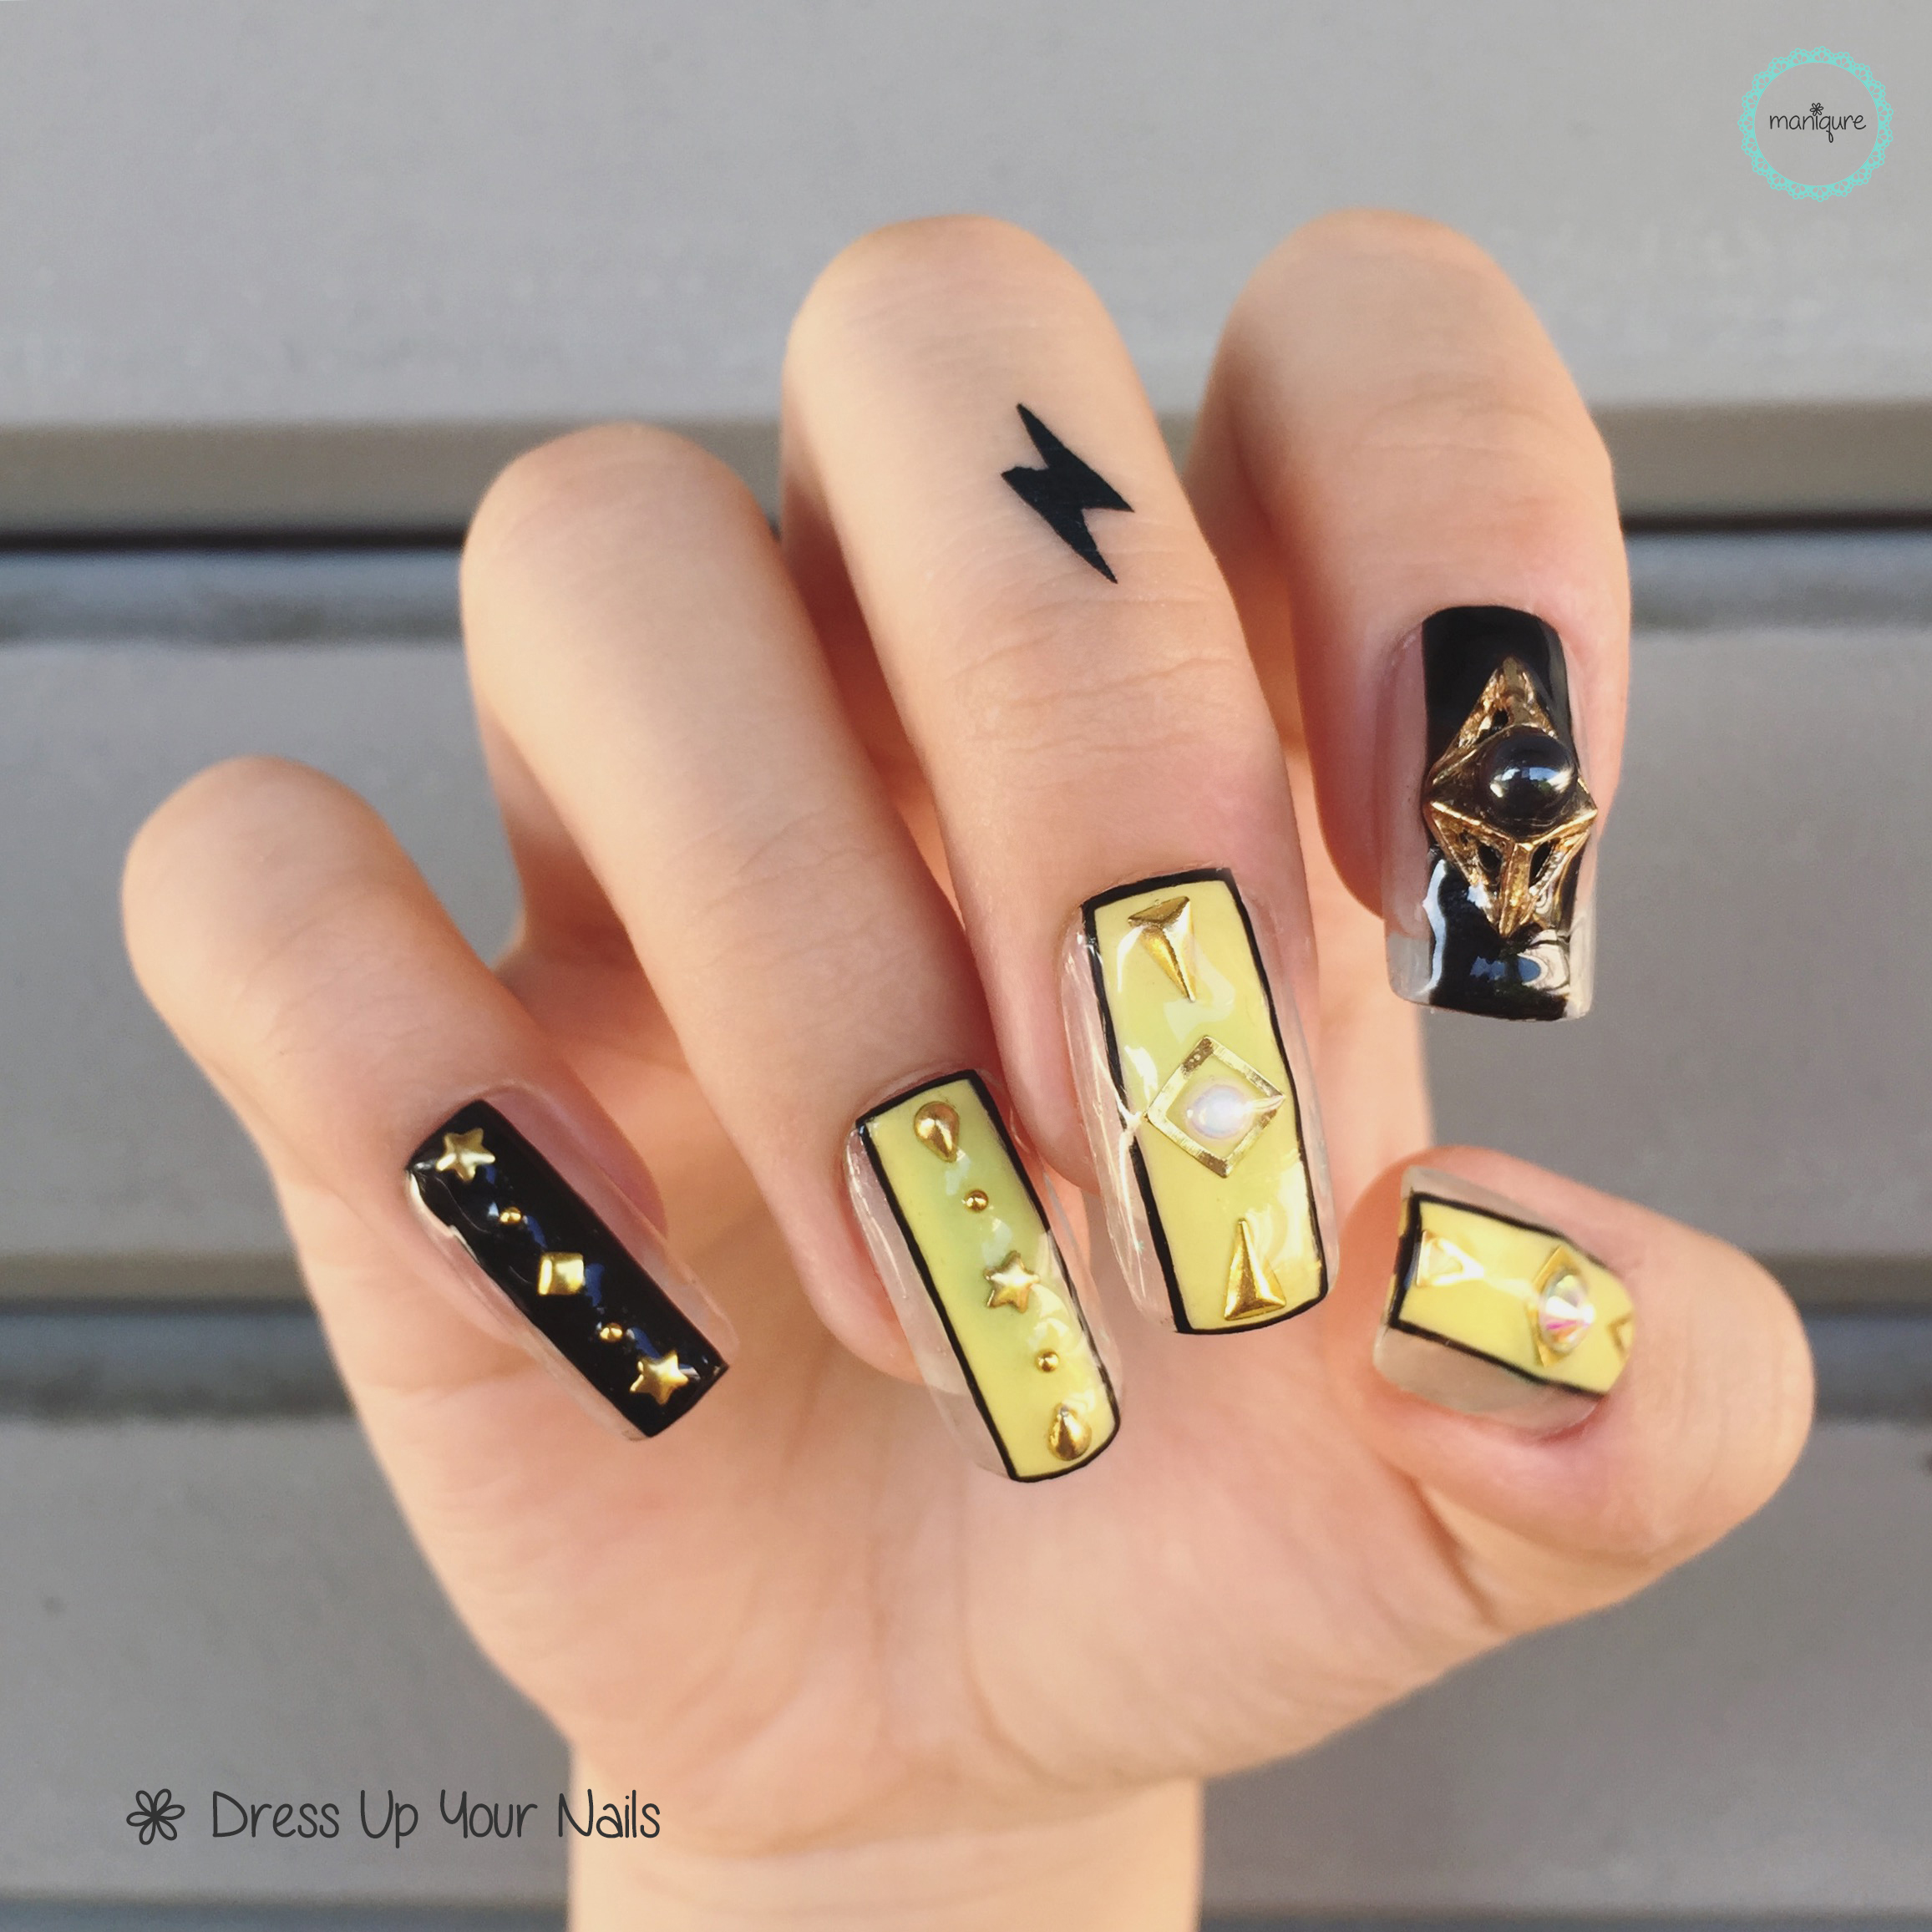 High Fashion Nails 24